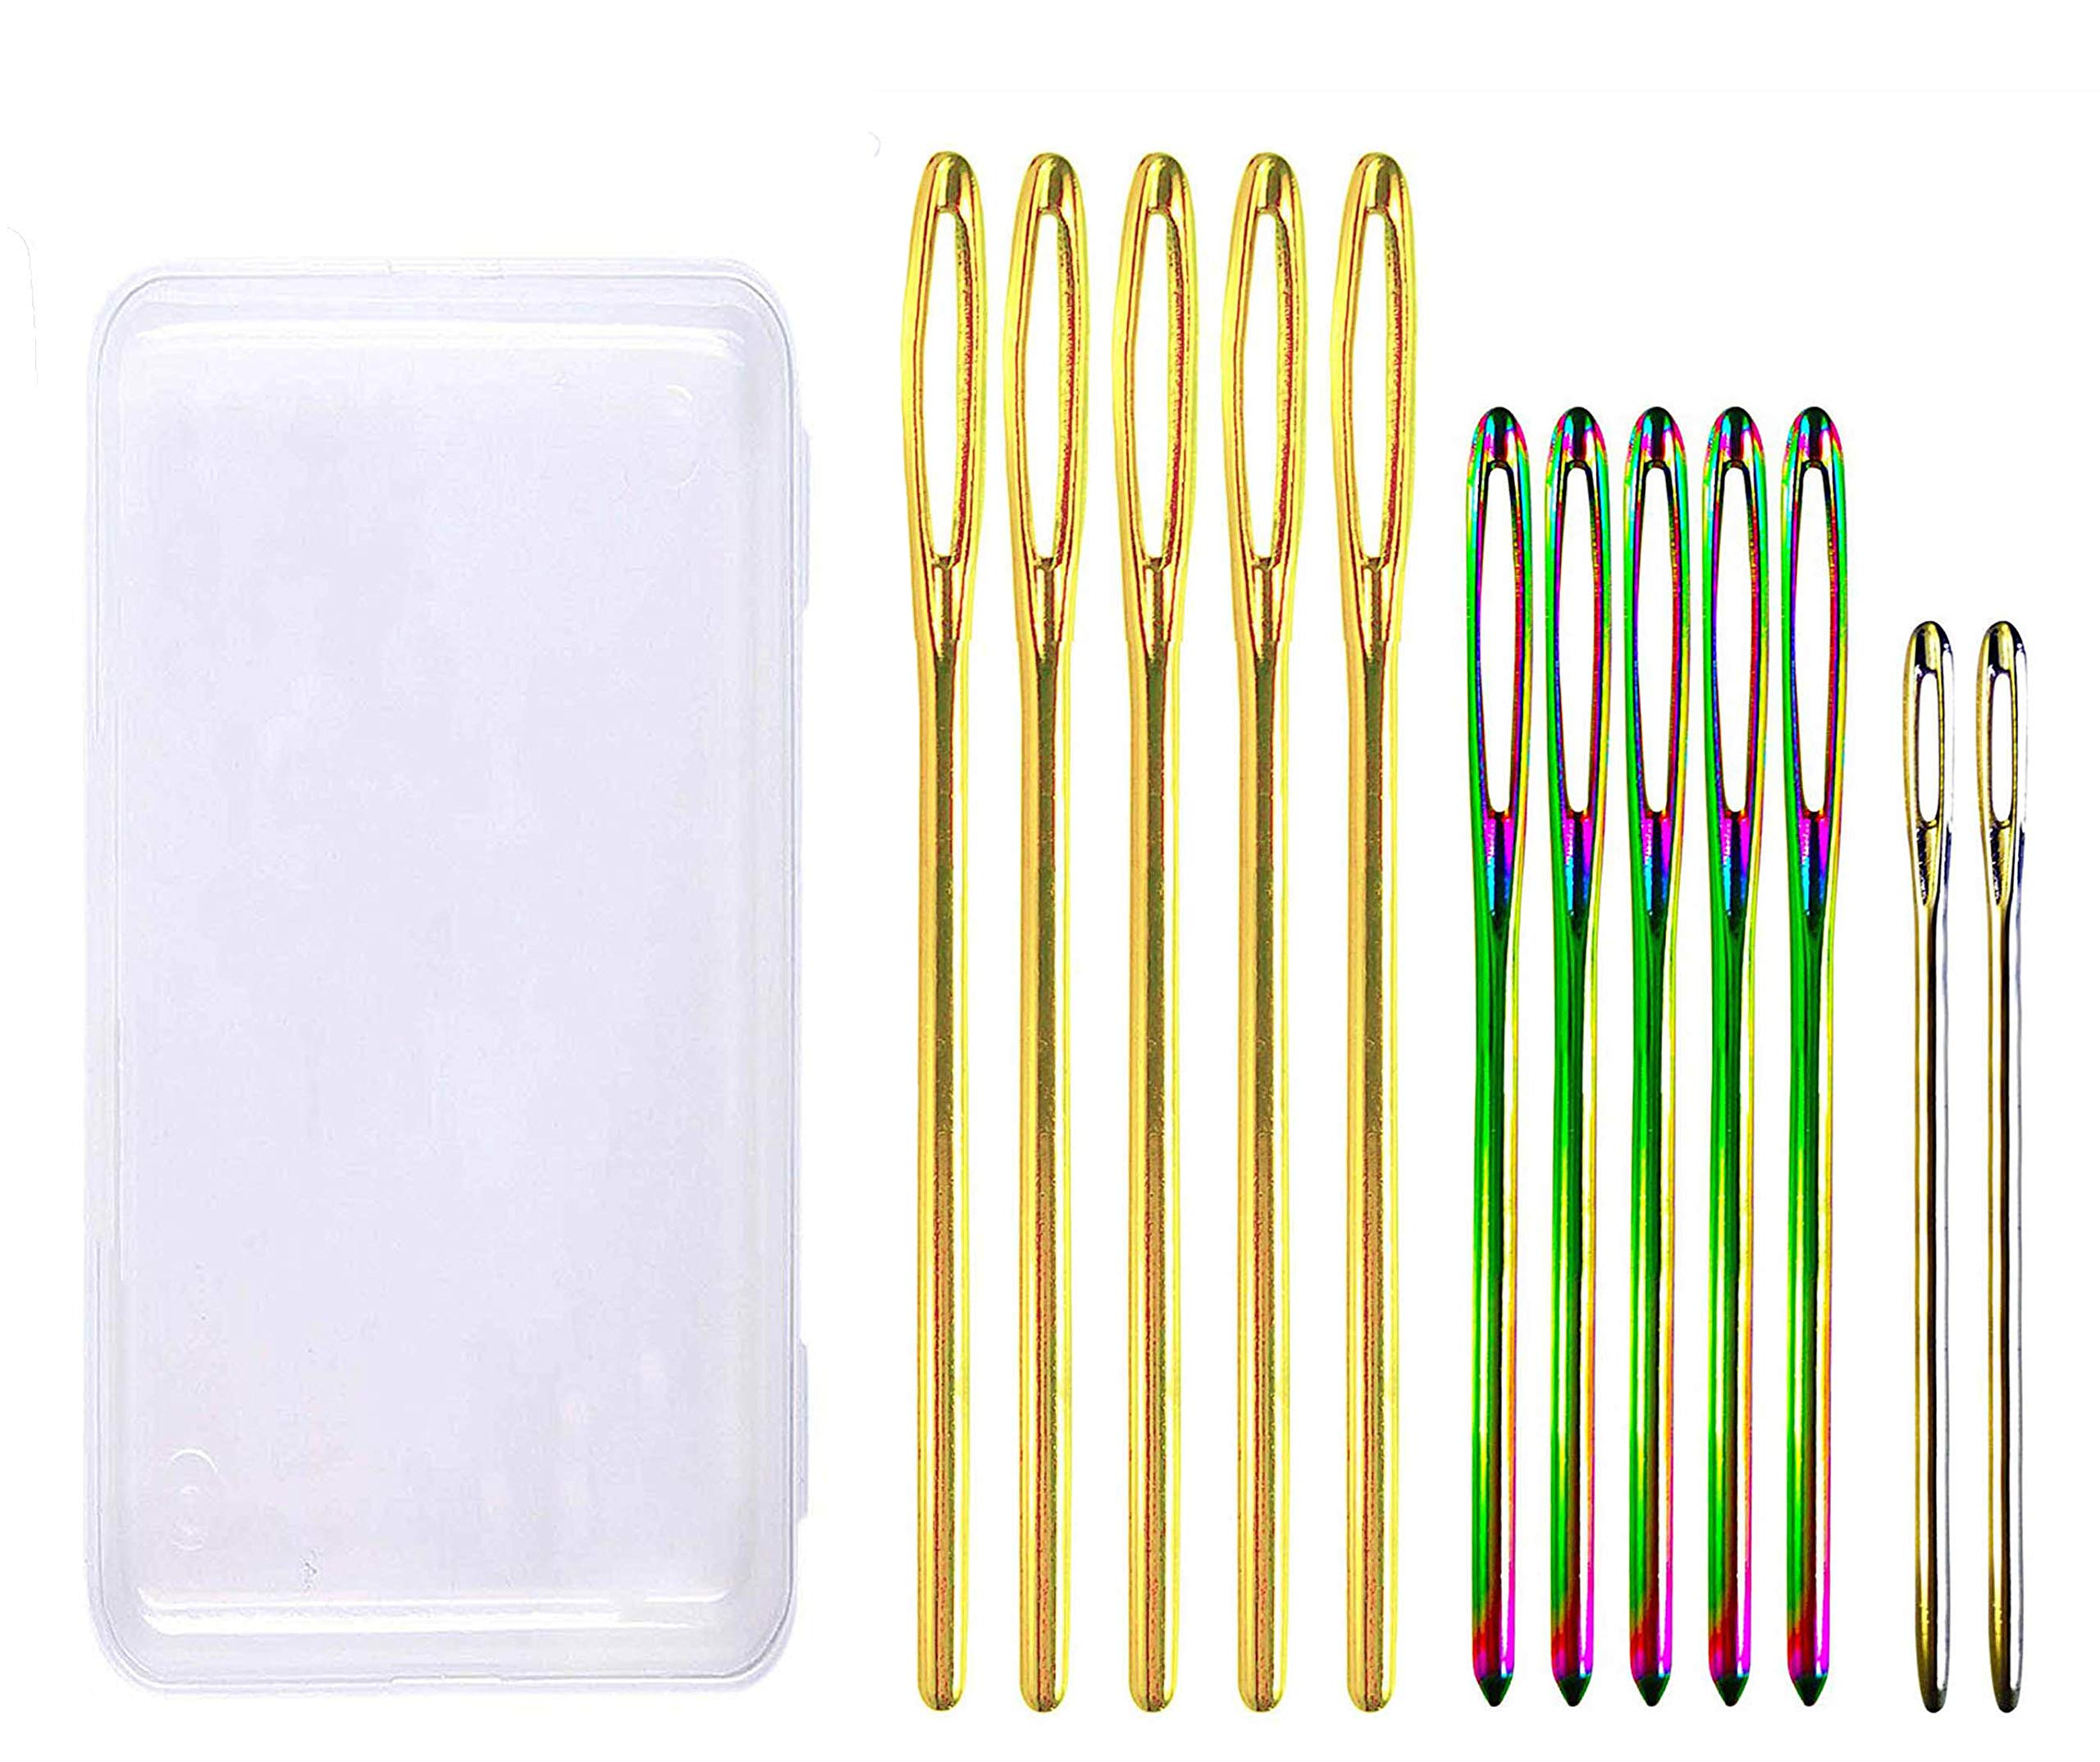 24 Pieces Large Eye Blunt Needles,Steel Yarn Knitting Needles Sewing Needles Embroidery Needles 3 Sizes Darning Tapestry Needles with Clear Bottle